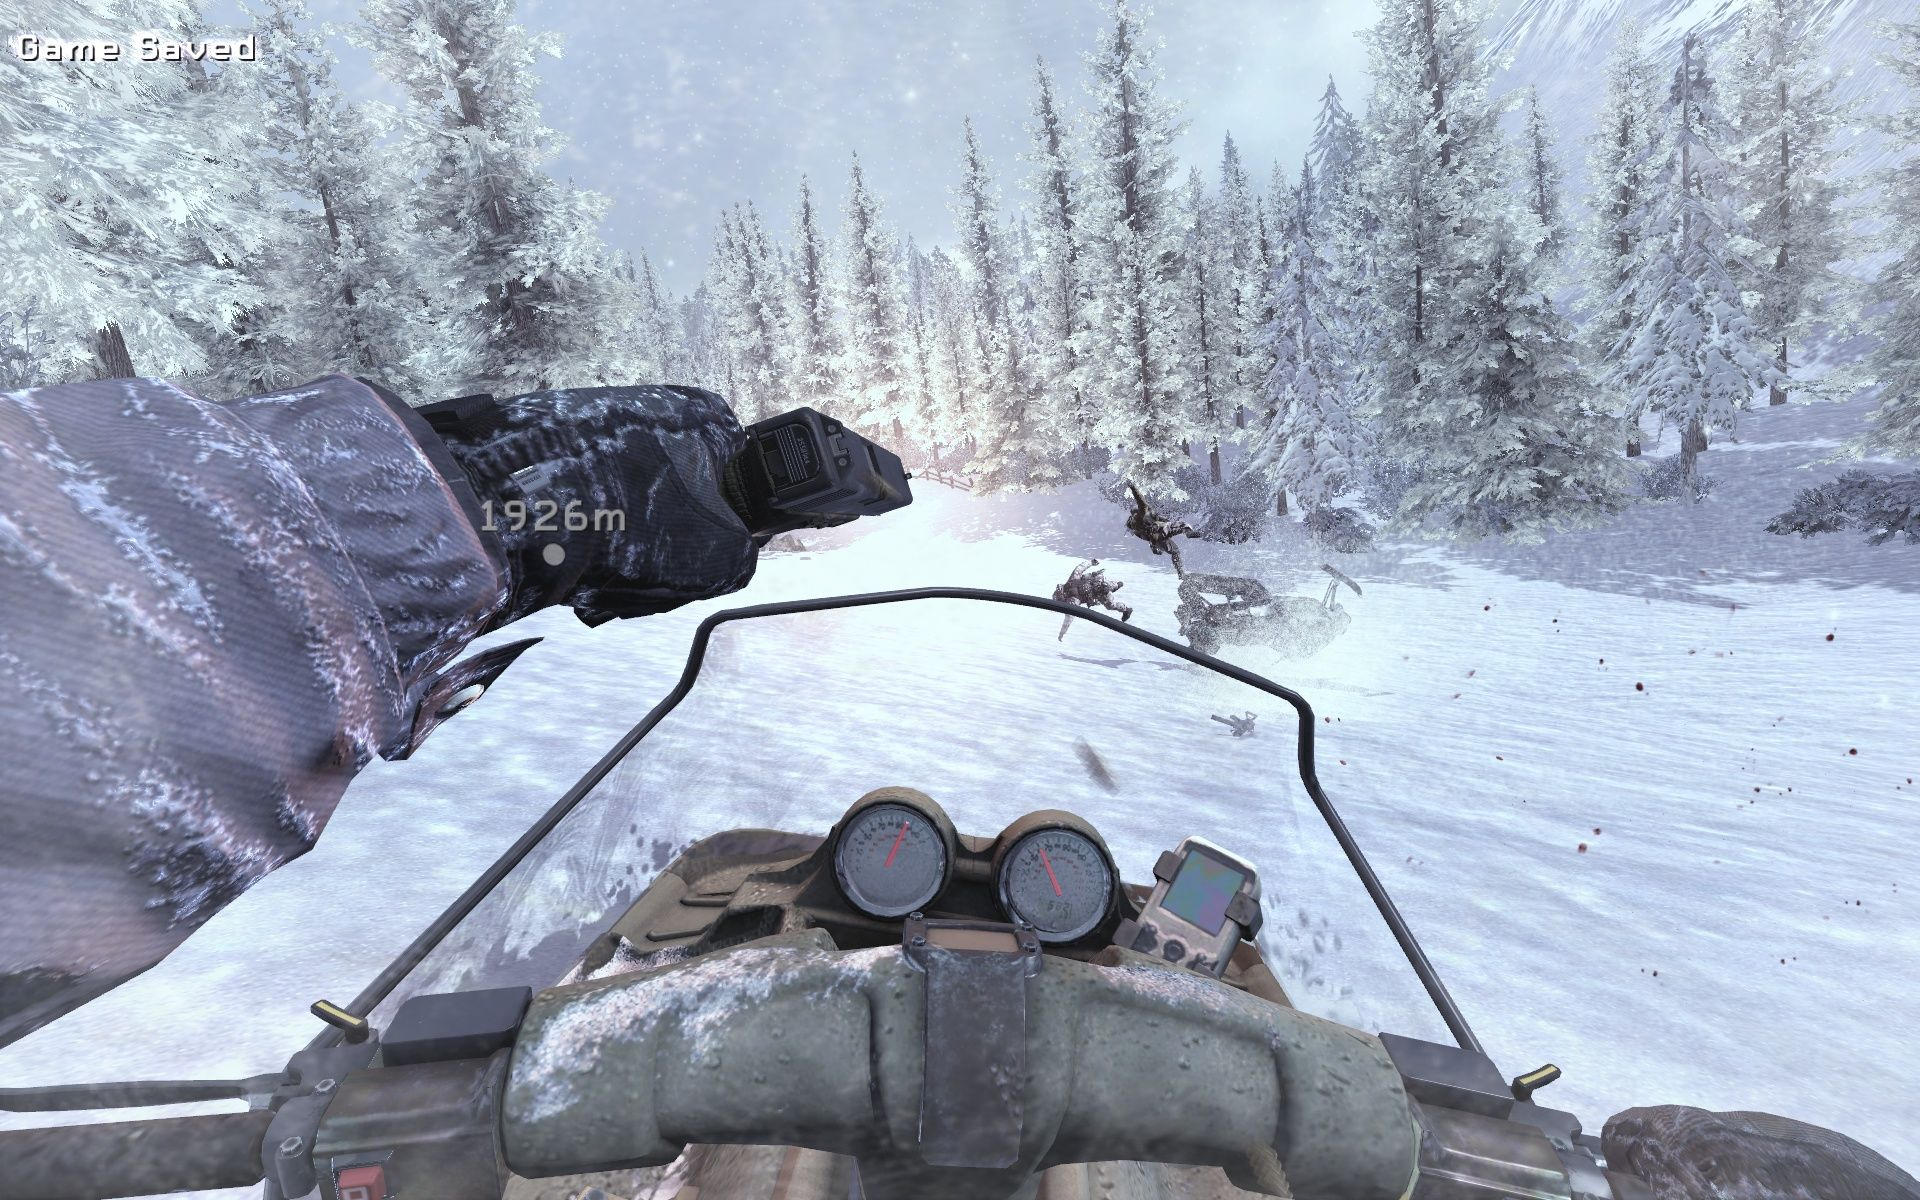 Call of Duty: Modern Warfare 2 Windows A snowspeeder-race with weapons - that's a game I would like to buy.